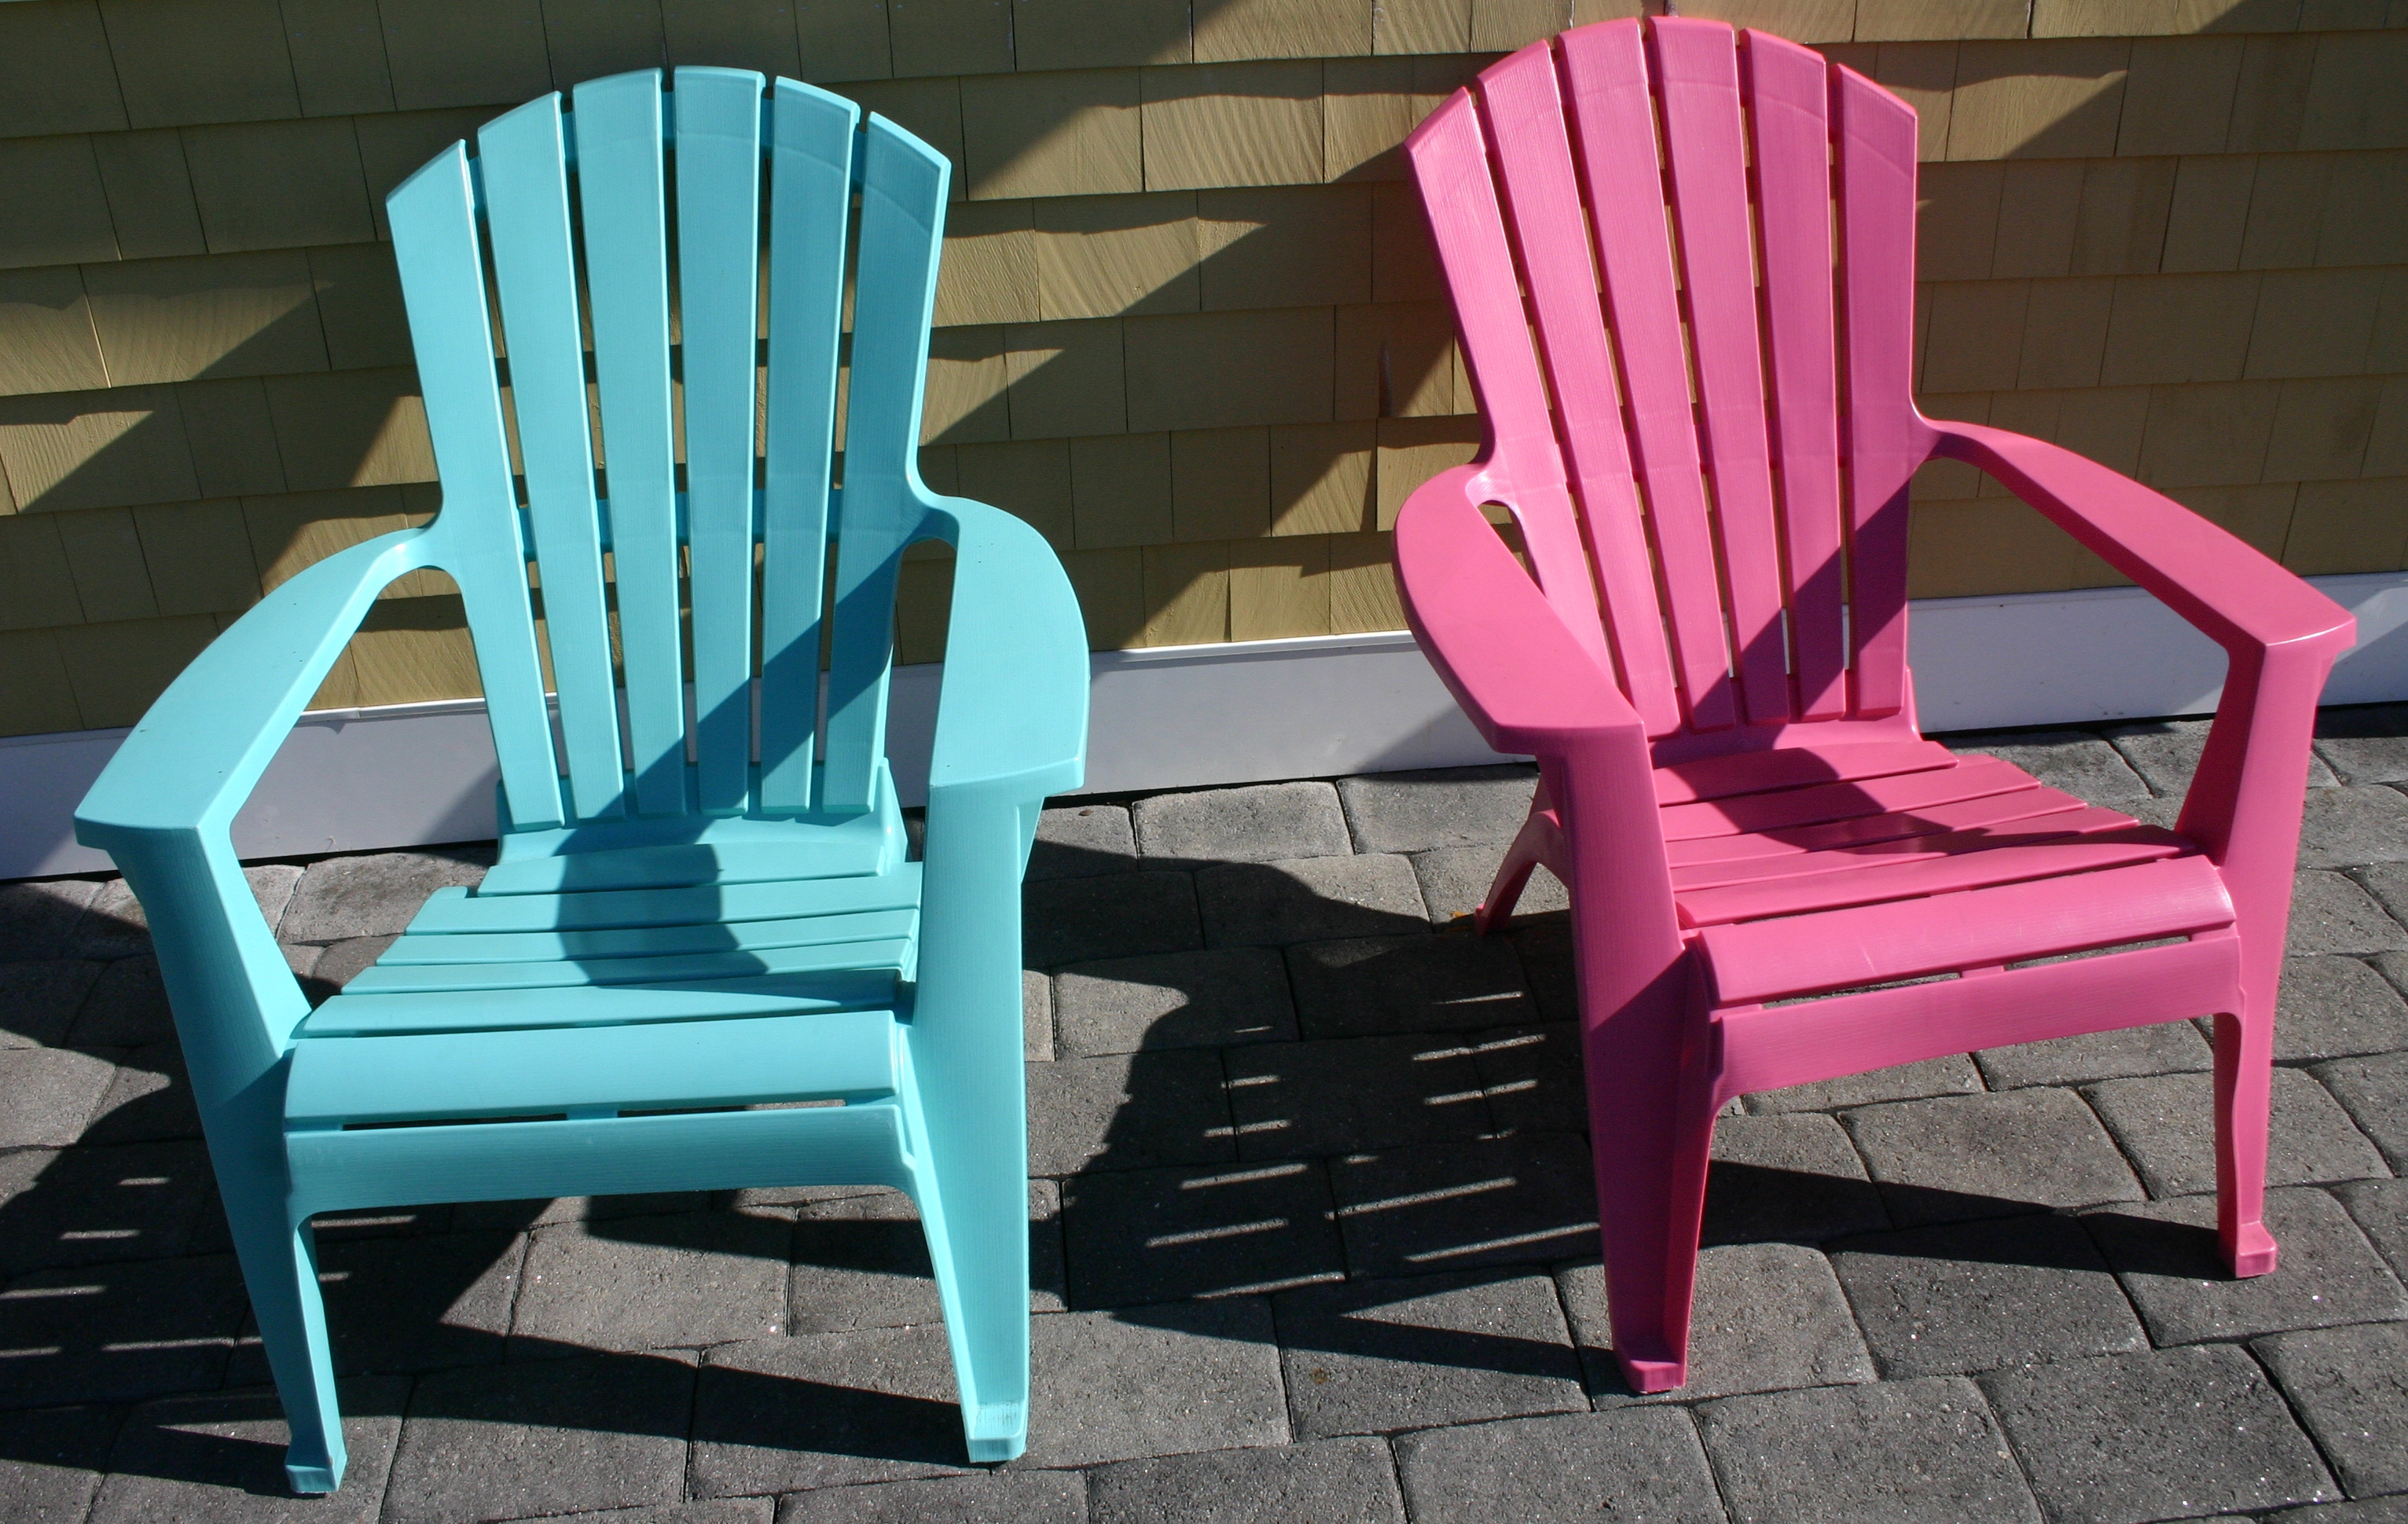 Margaritaville Adirondack Chairs Johanna Knapschaefer A Blog About The Life And Musings